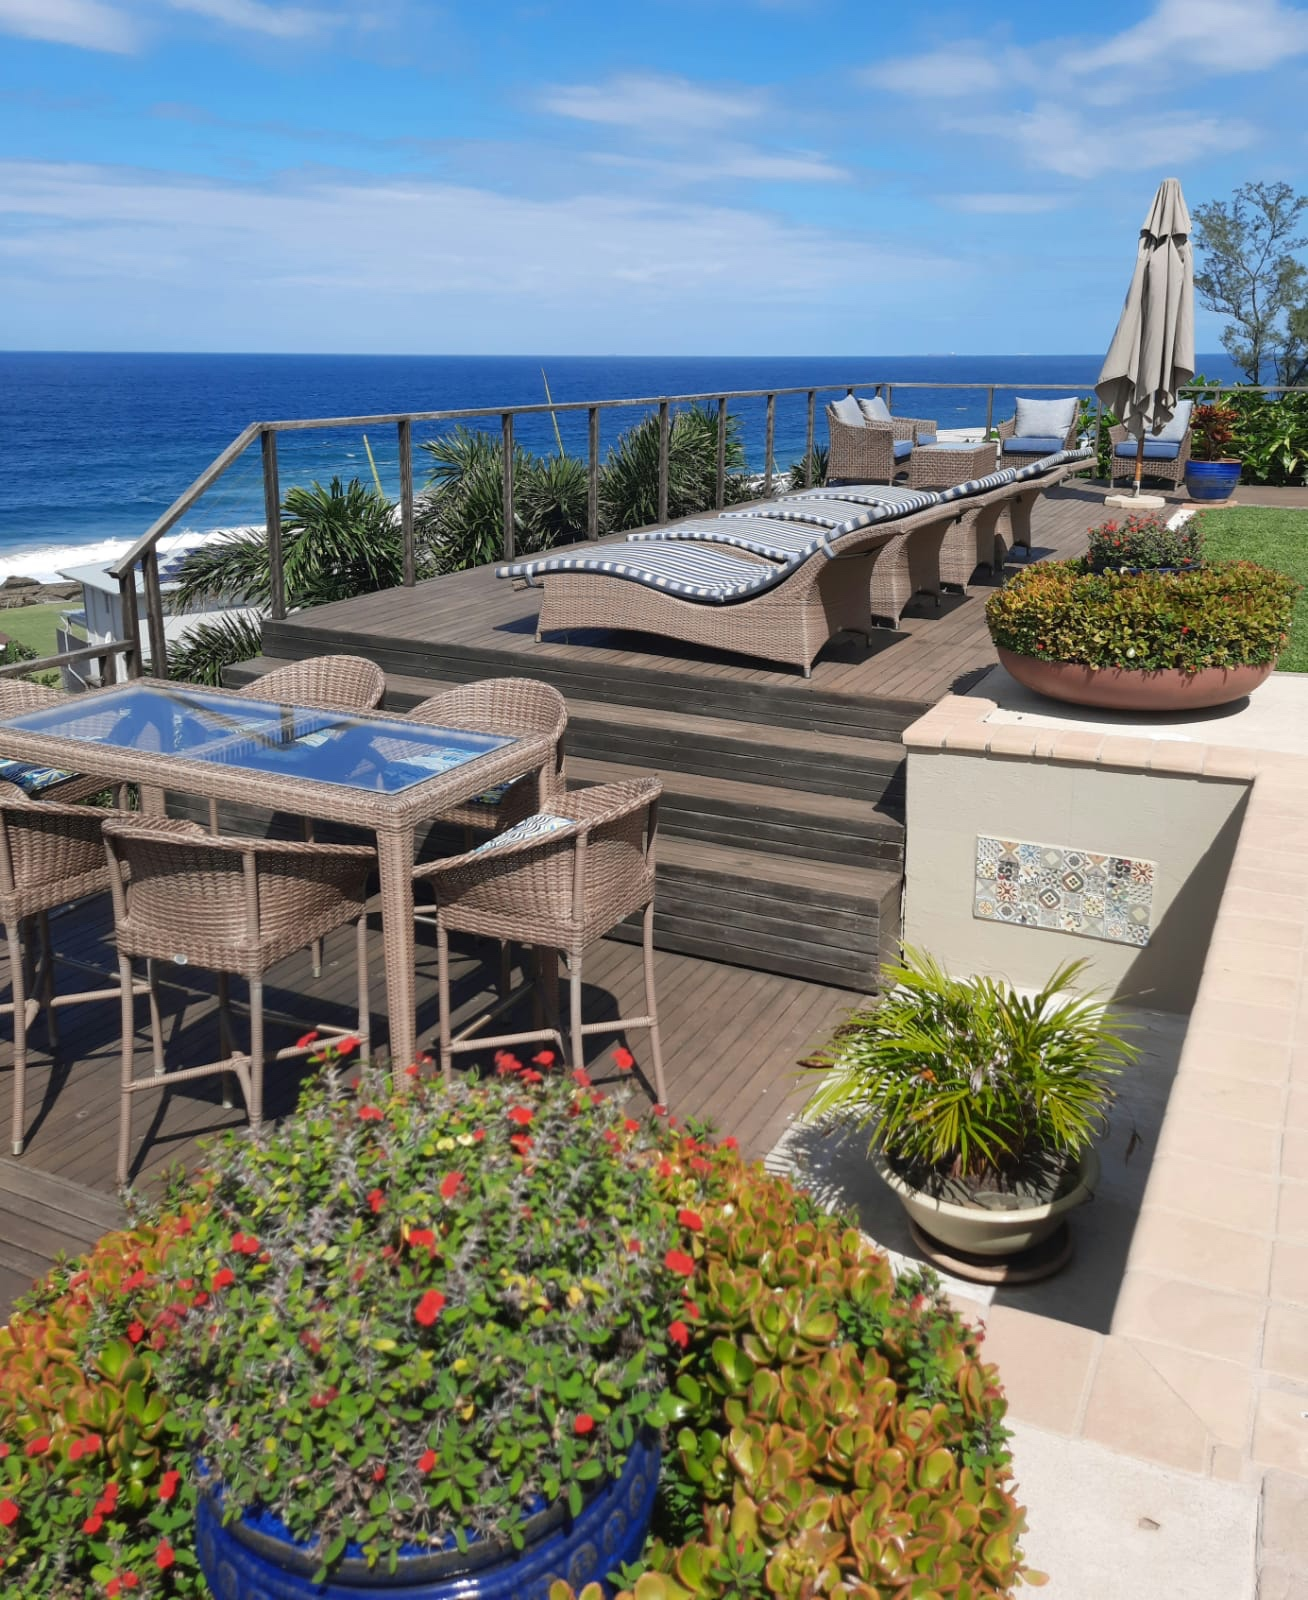 Mirage outdoor loungers and bar table and bar stools